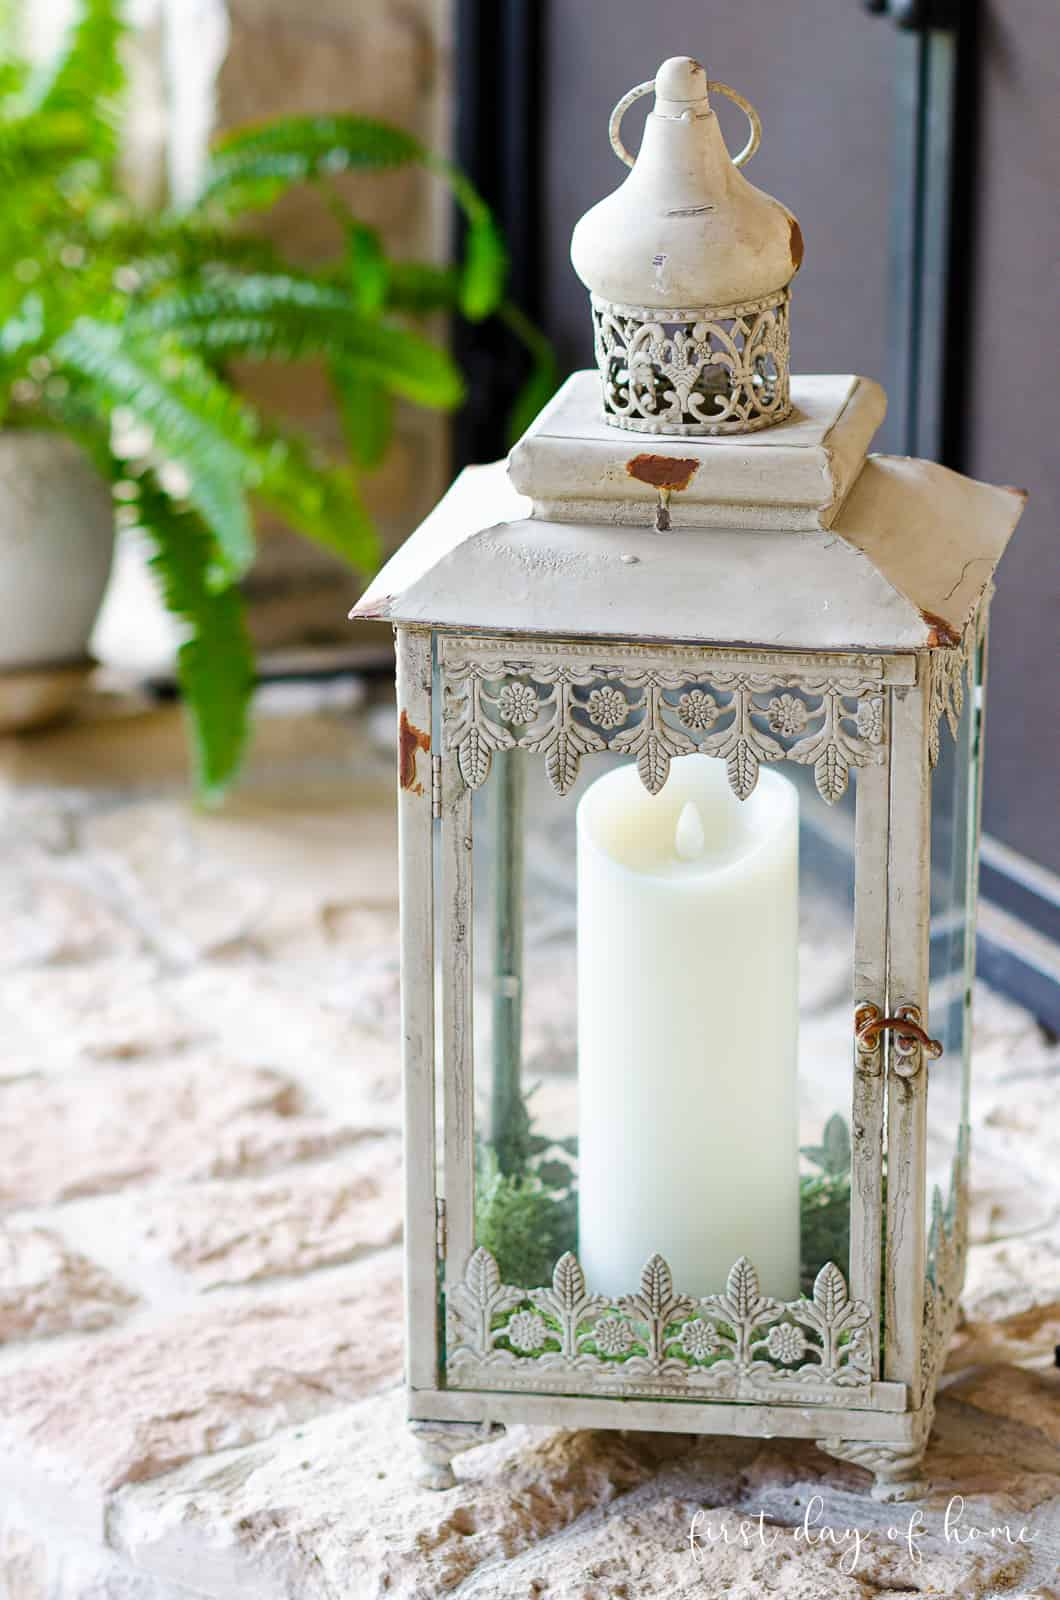 Greenery in moroccan lantern with pillar candle sitting on fireplace hearth outdoors